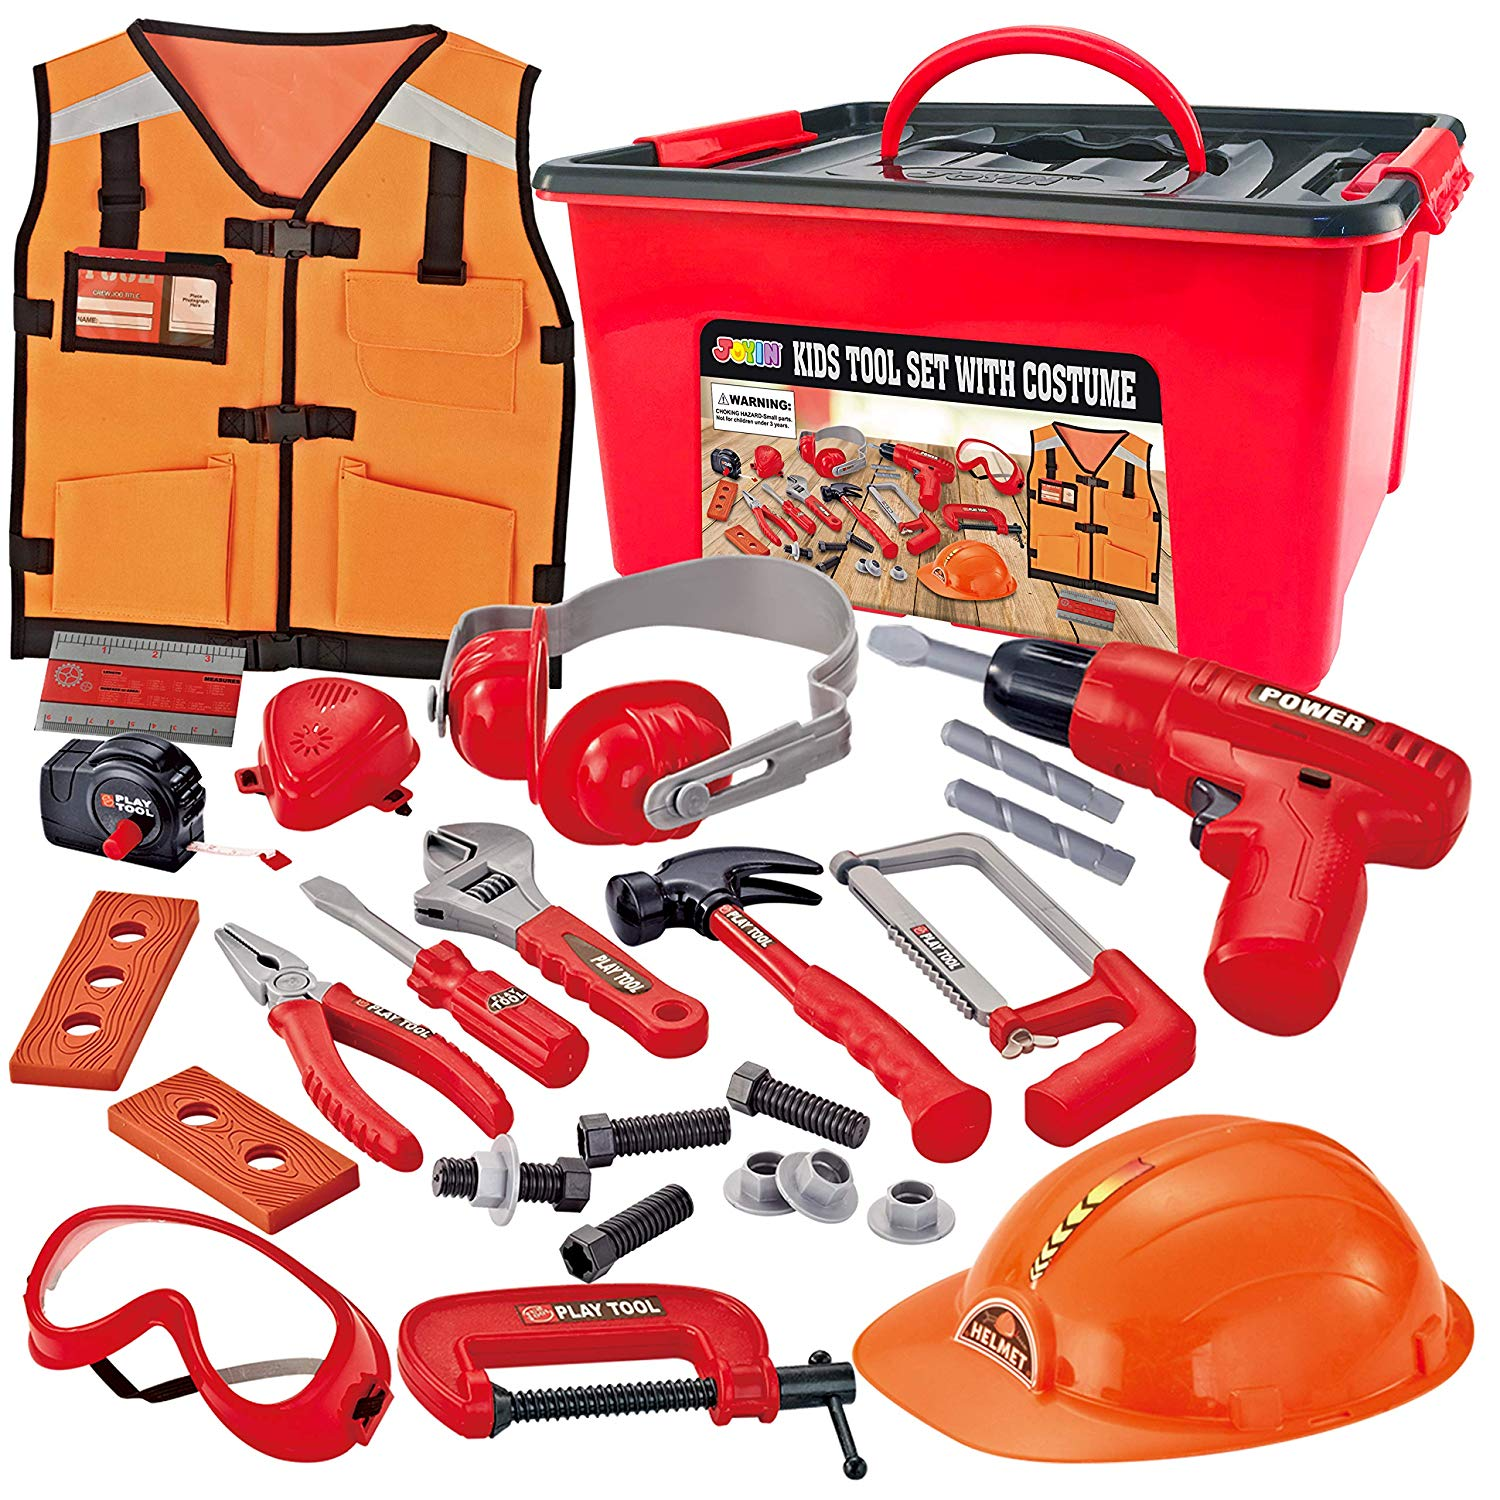 24 Piece Tool Set with Costume